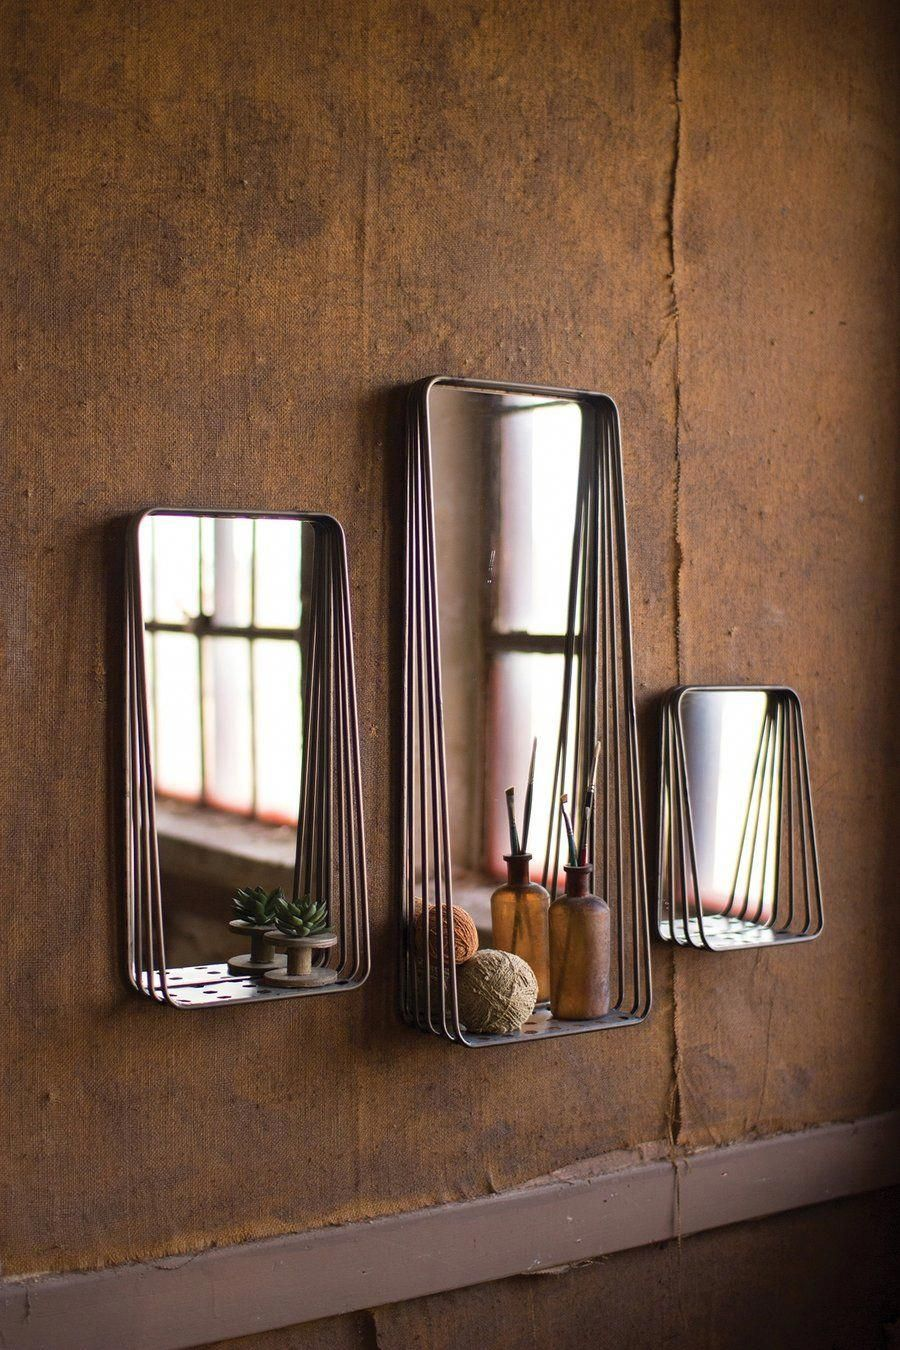 This set of modern style mirrors come with a unique rustic